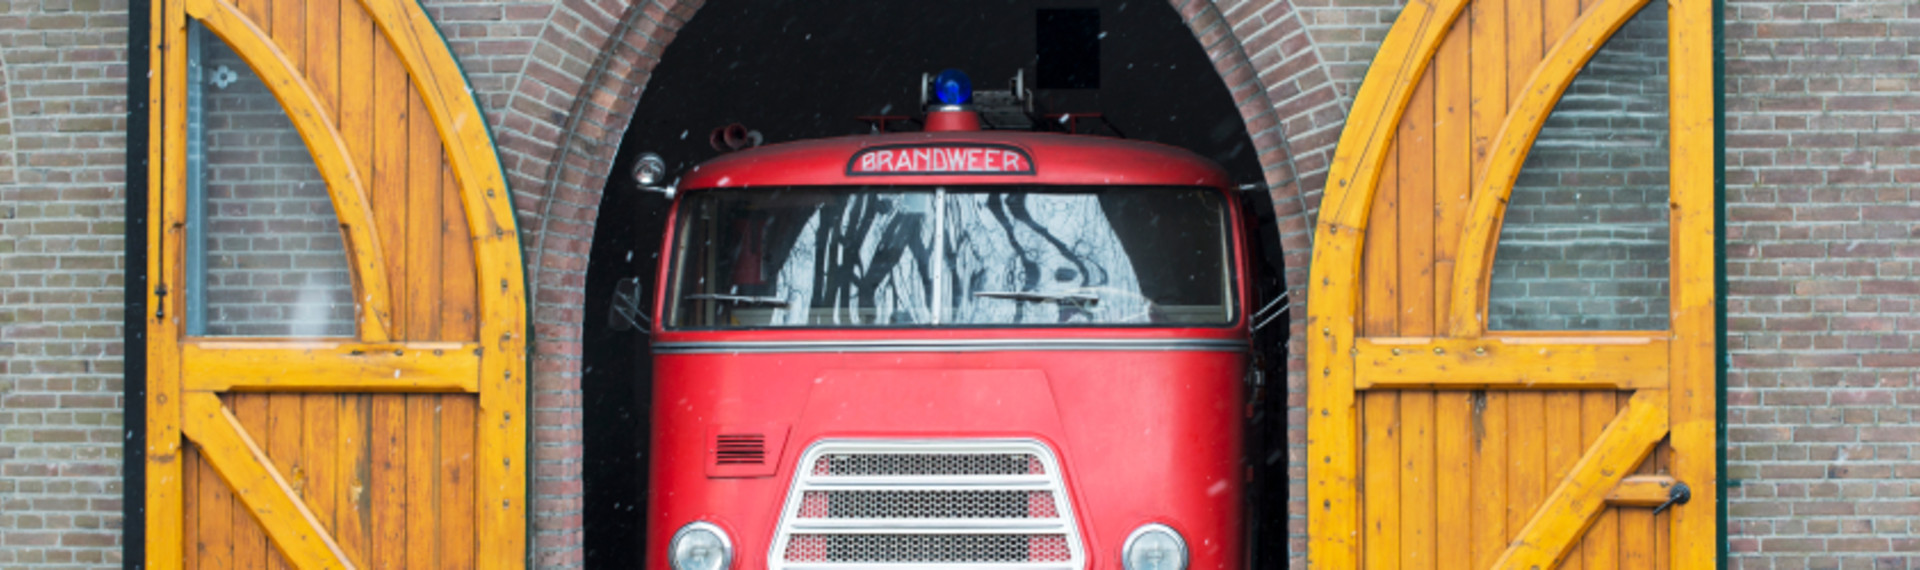 Amsterdam Fire Truck Party Bus image